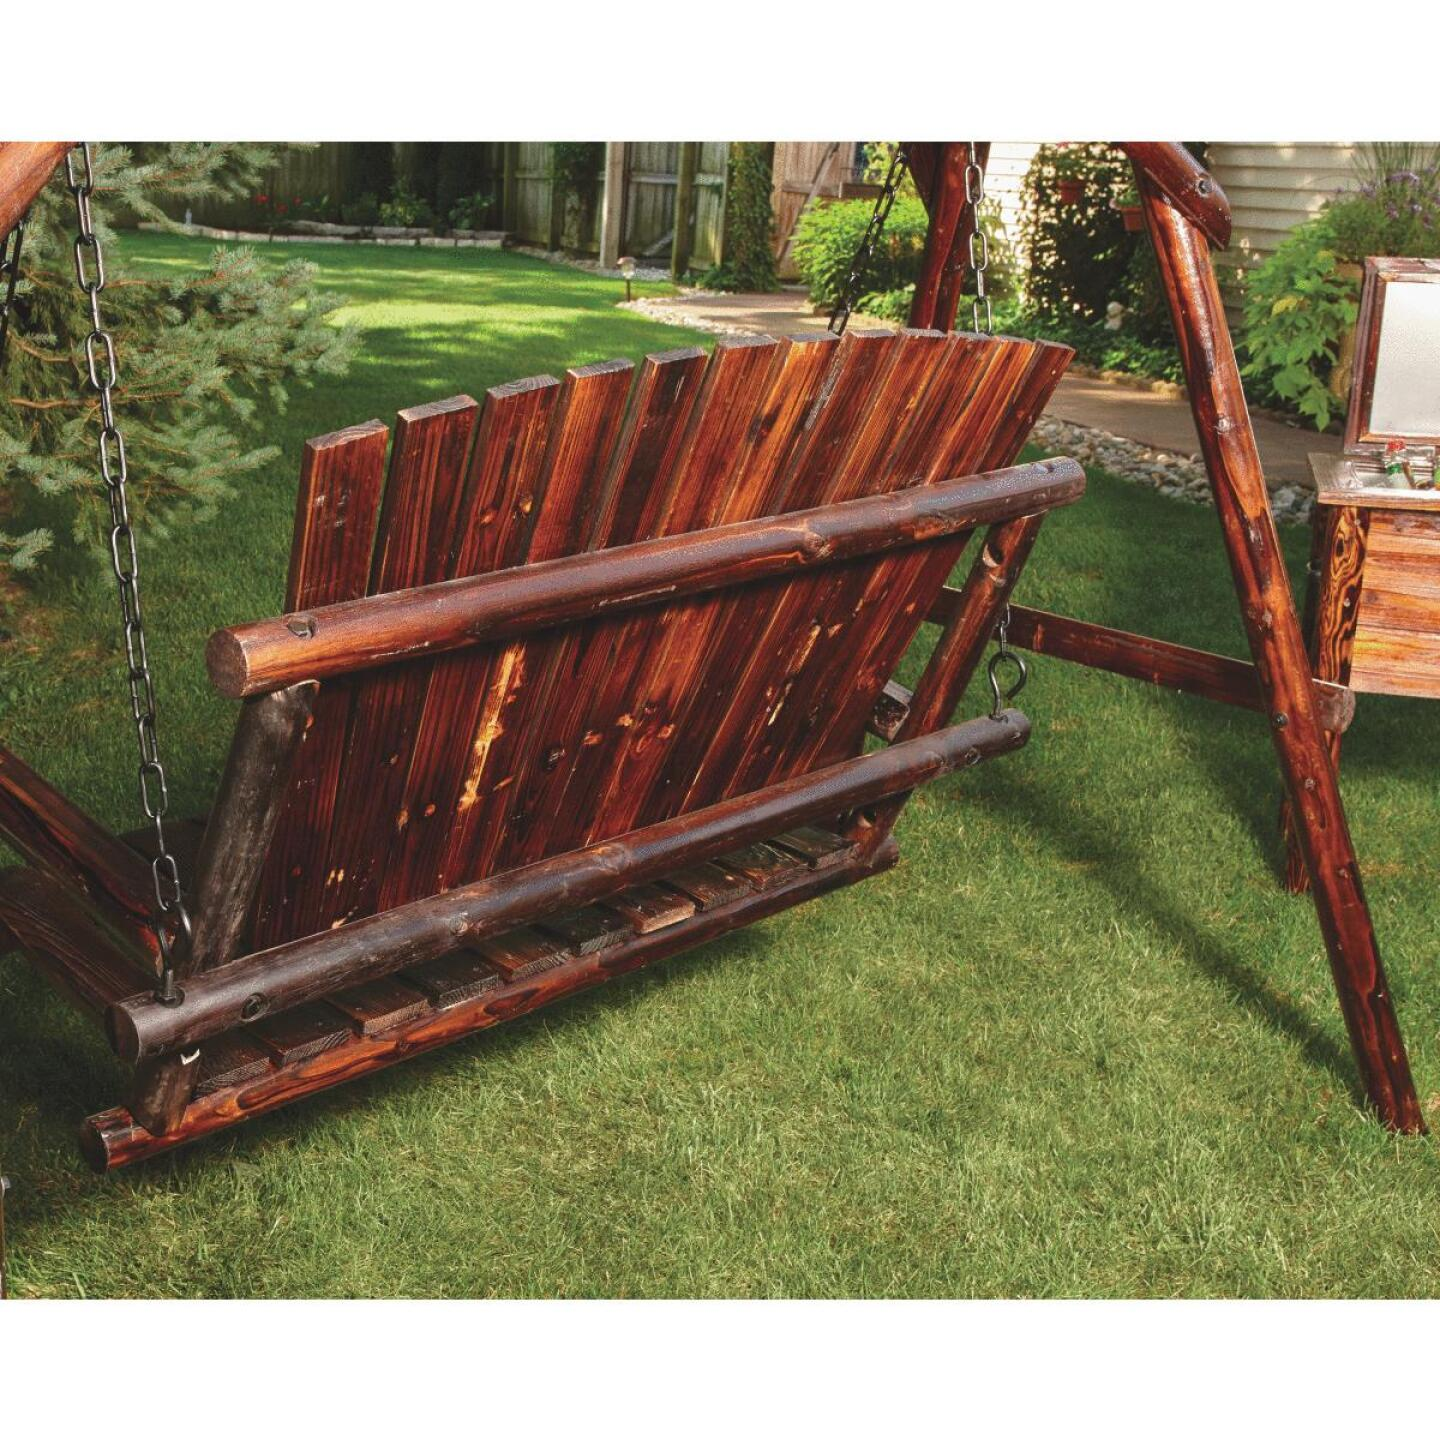 Char-Log 2-Person 90 In. W. x 67.5 In. H. x 50 In. D. Charred Wood Patio Swing Image 4